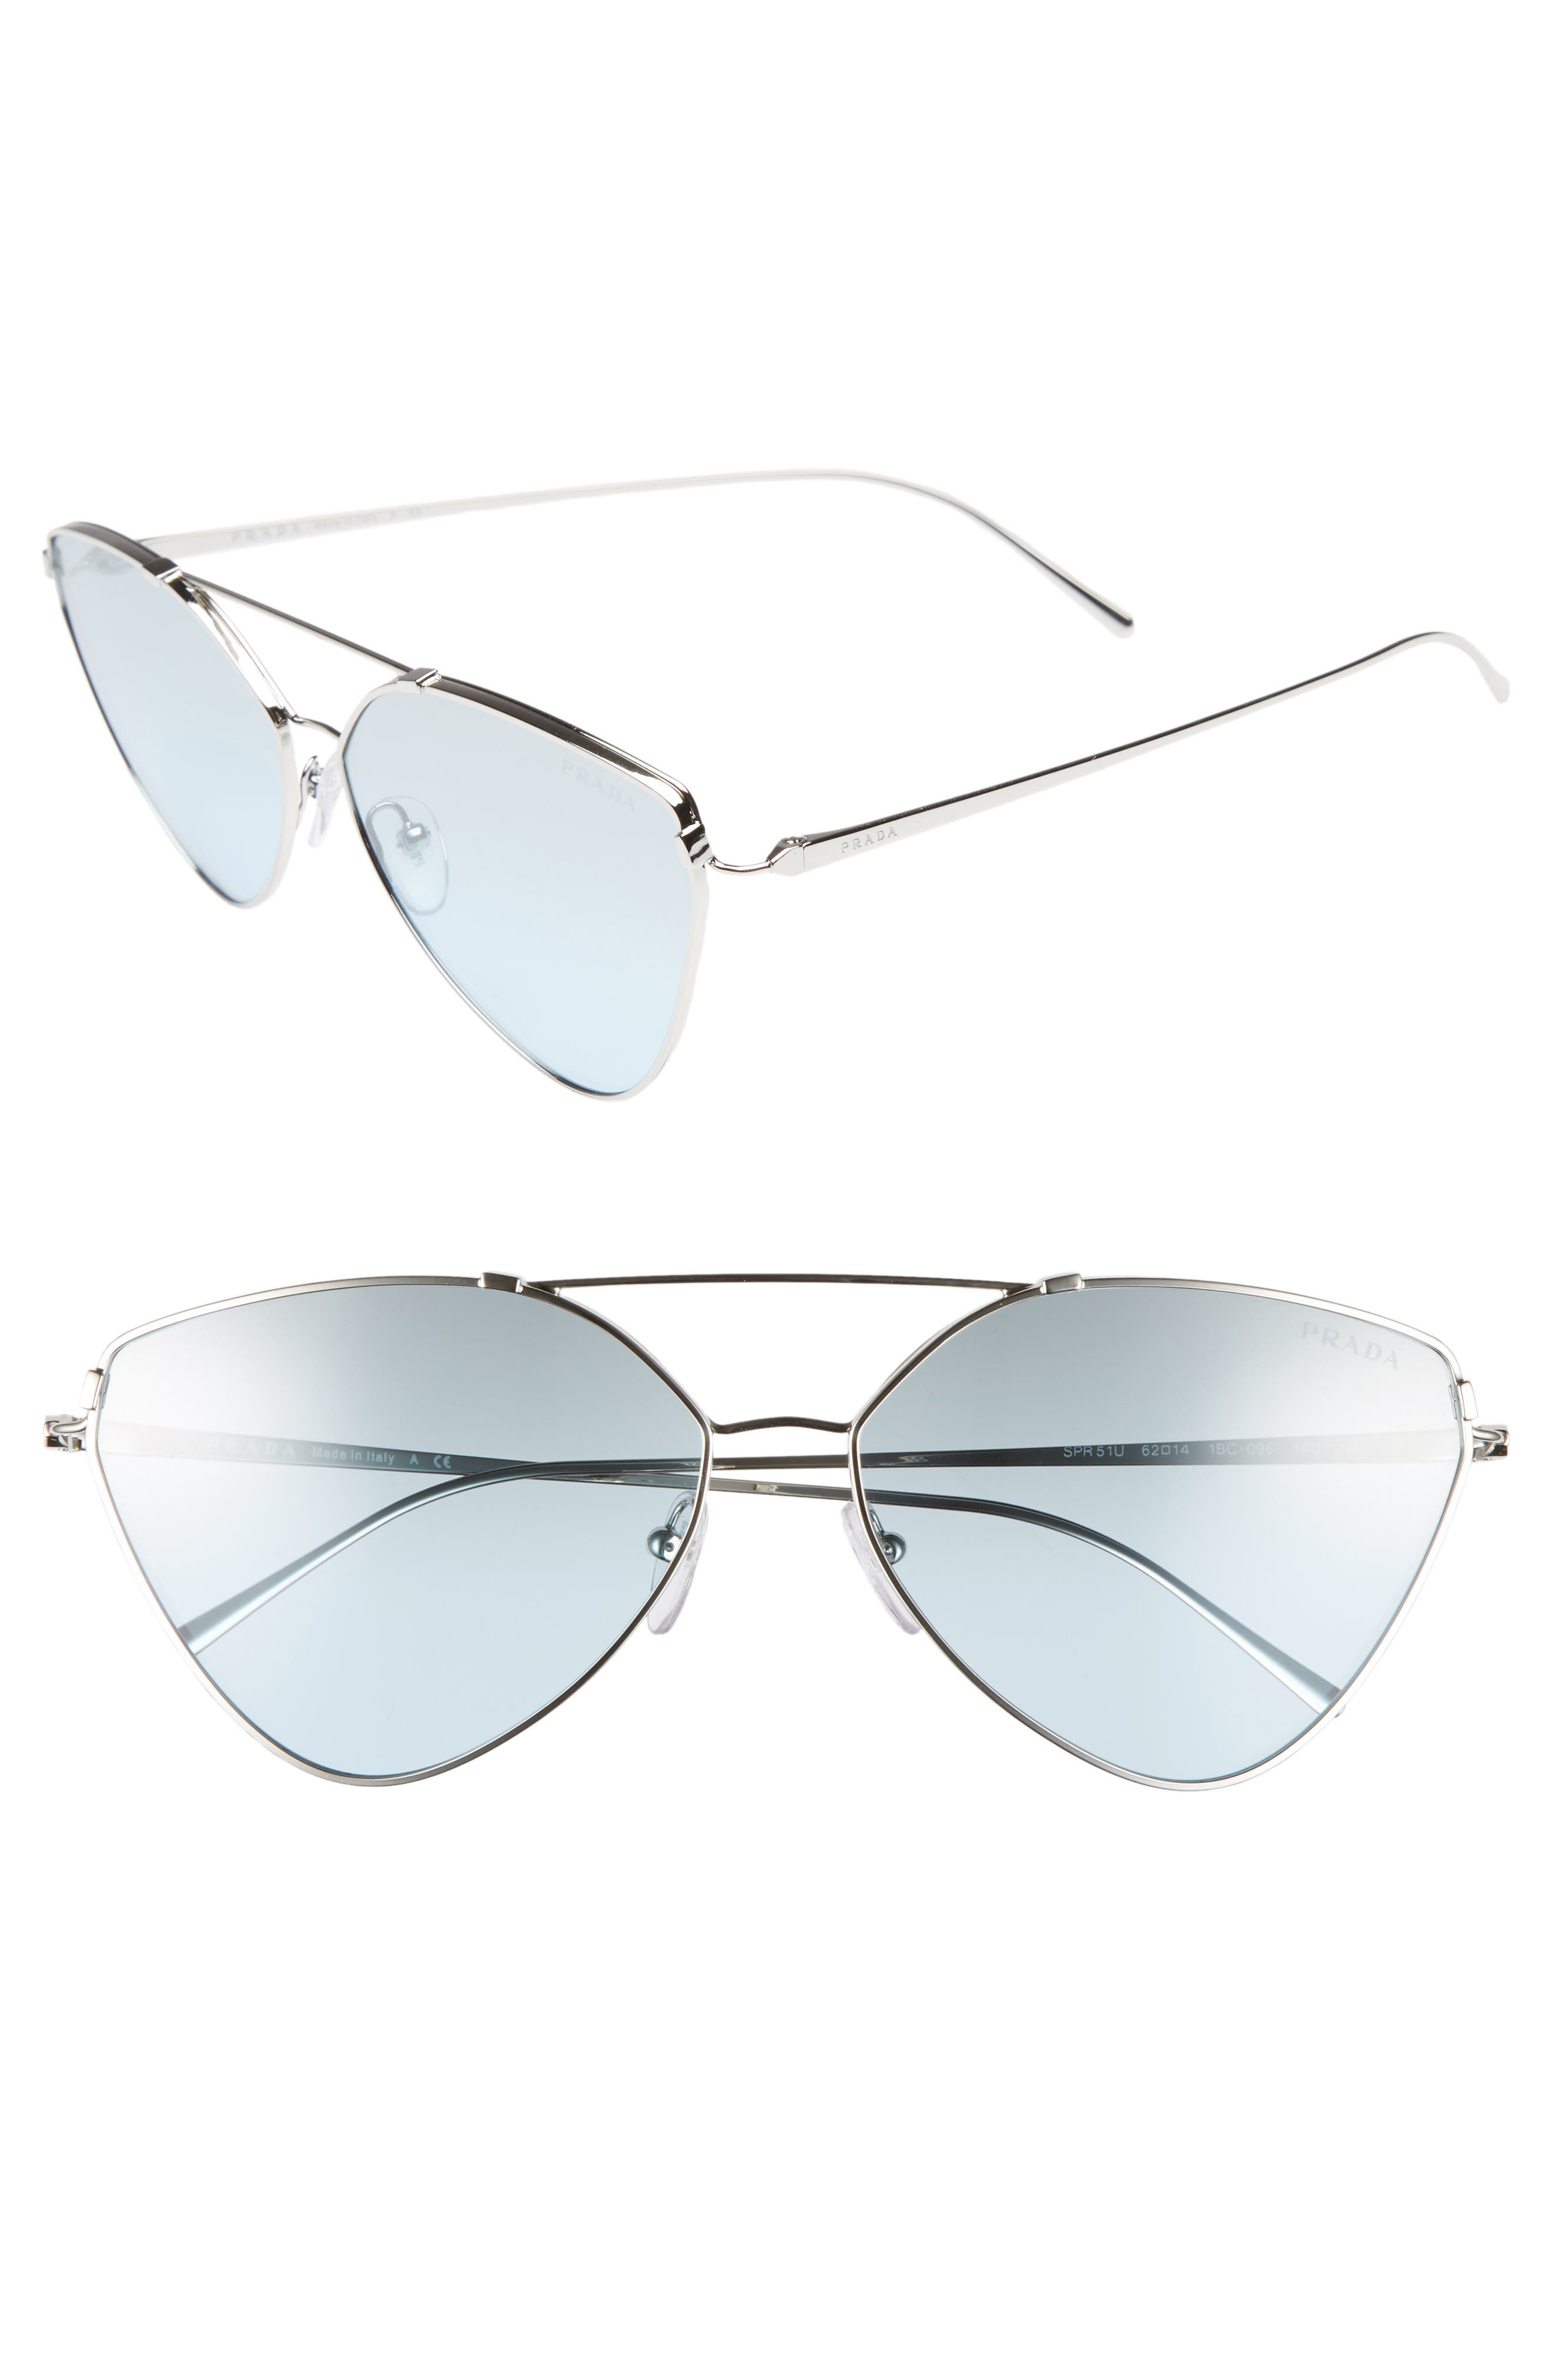 62mm Oversize Aviator Sunglasses,                             Main thumbnail 1, color,                             Silver